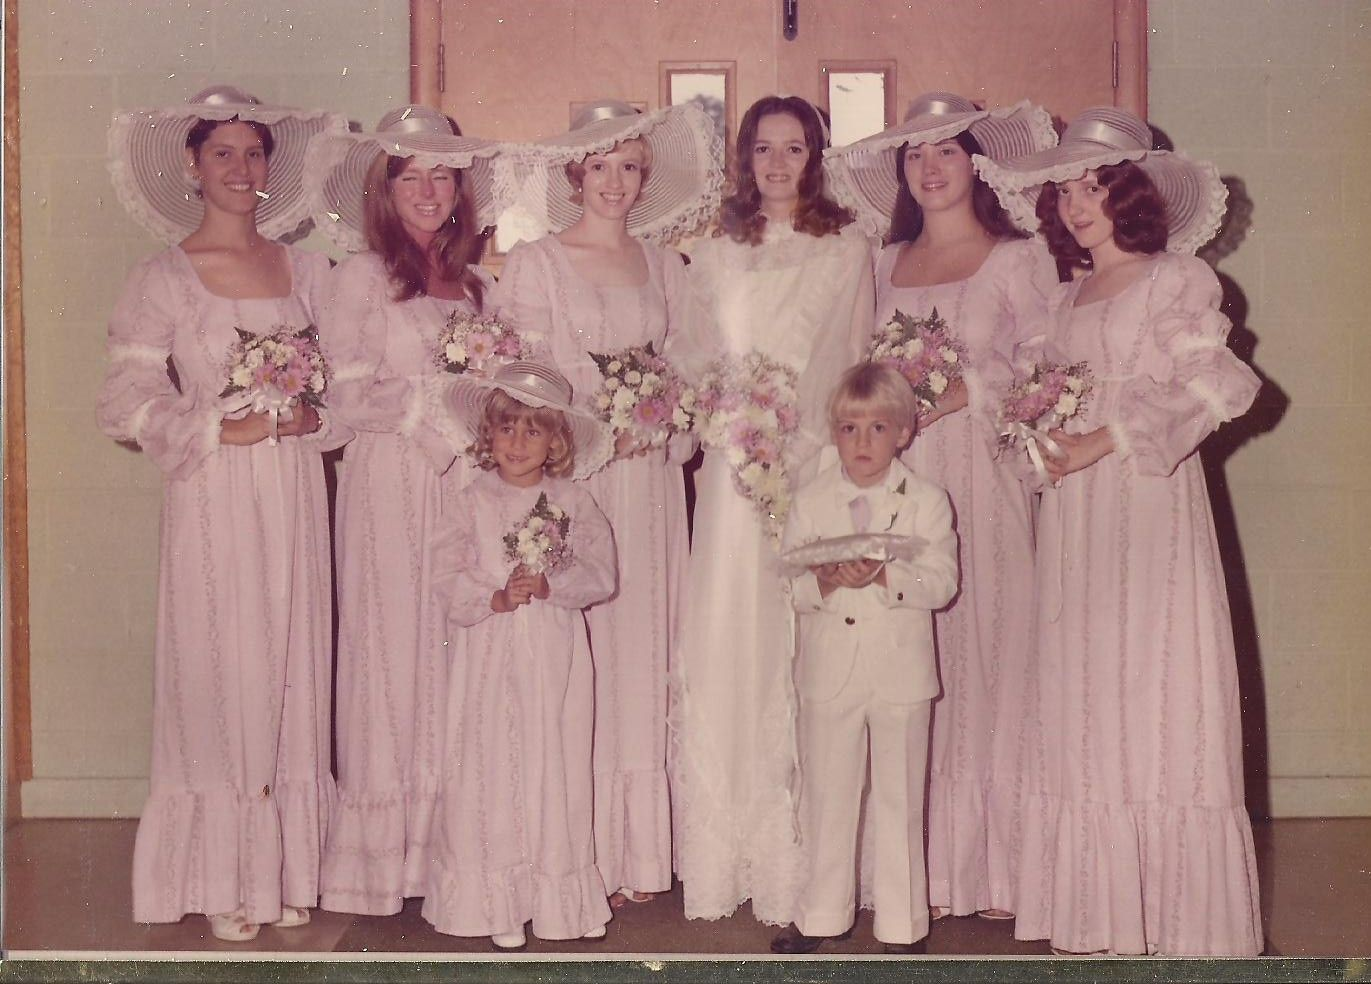 1974- apparently this WAS the style! My parents were married in 1974 ...